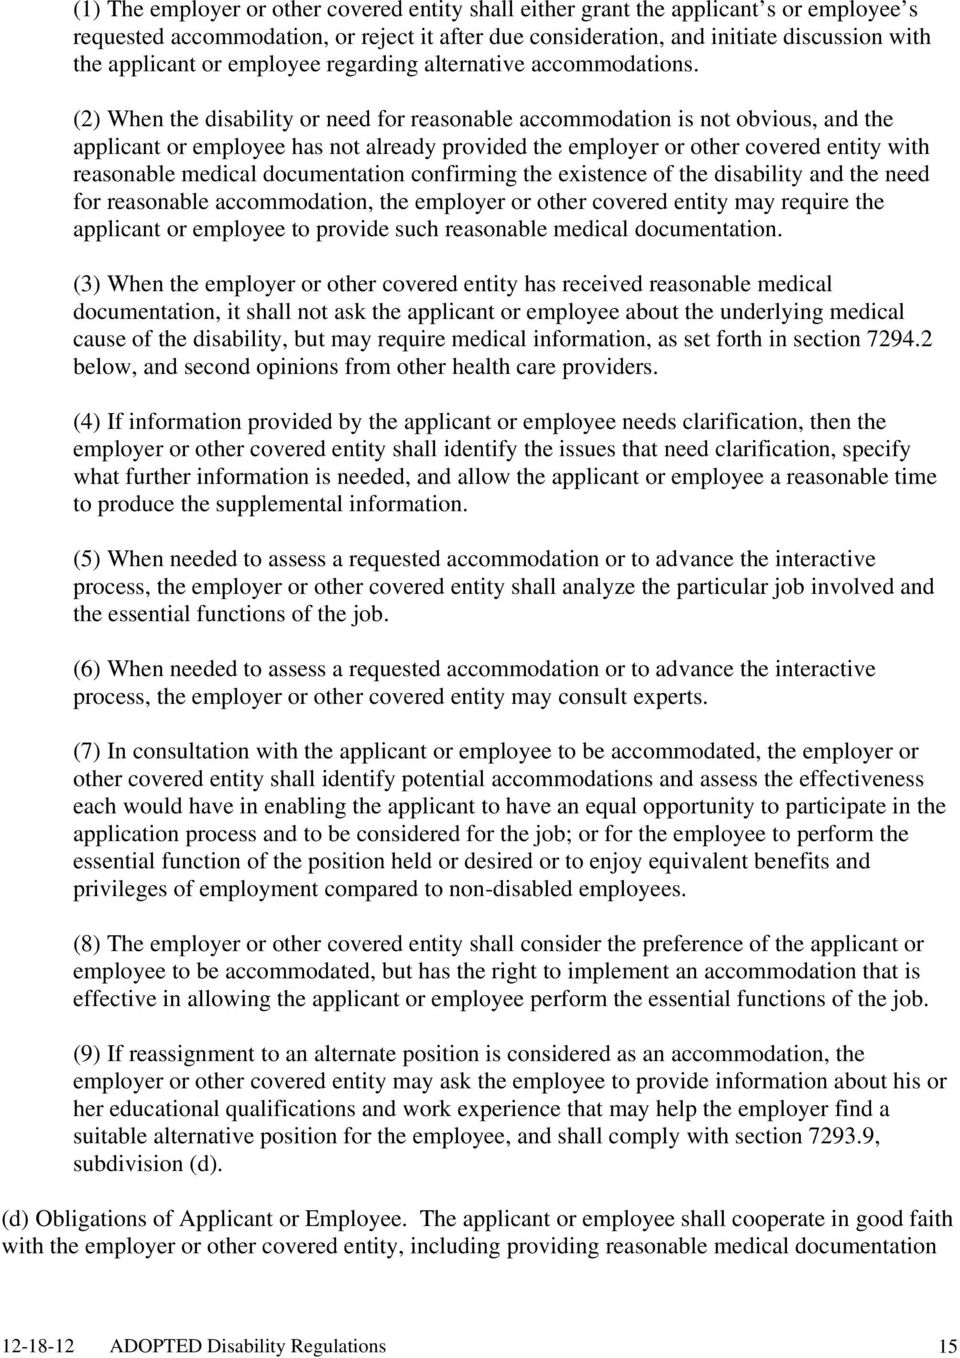 (2) When the disability or need for reasonable accommodation is not obvious, and the applicant or employee has not already provided the employer or other covered entity with reasonable medical